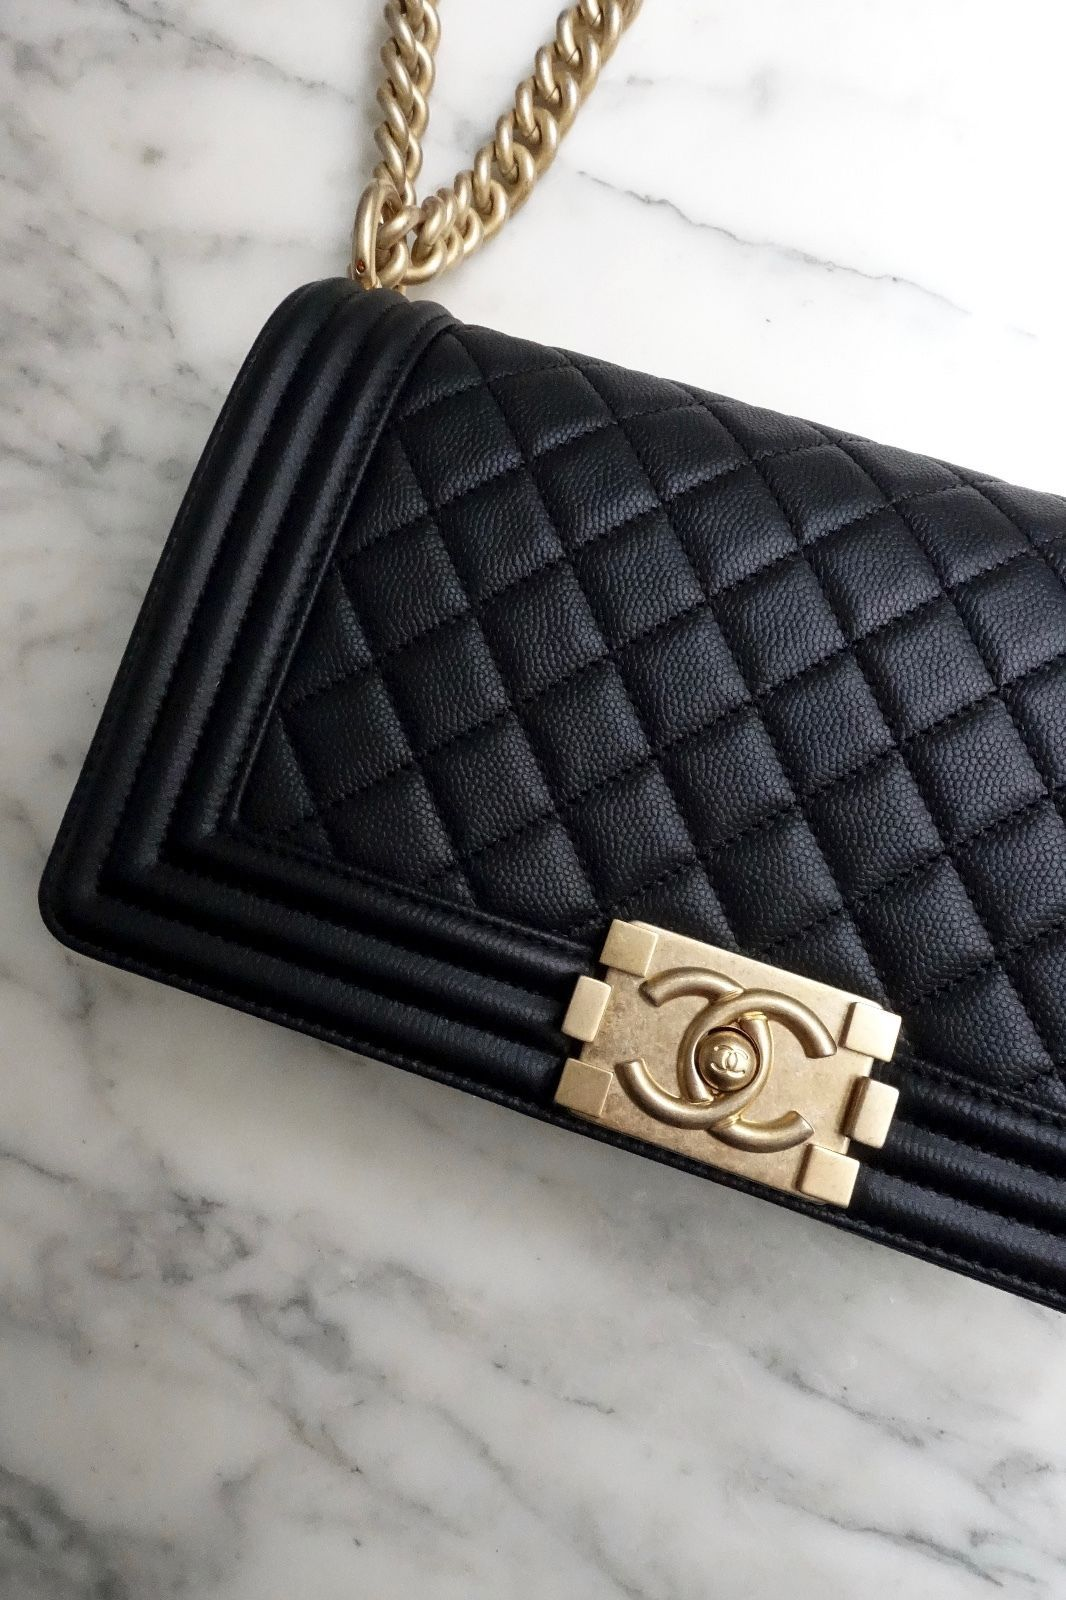 a65a8bd09157b8 *NEW* 2017 AUTH CHANEL BOY BAG Black Quilted Caviar Leather Light Gold  Chain Bag $5200.0